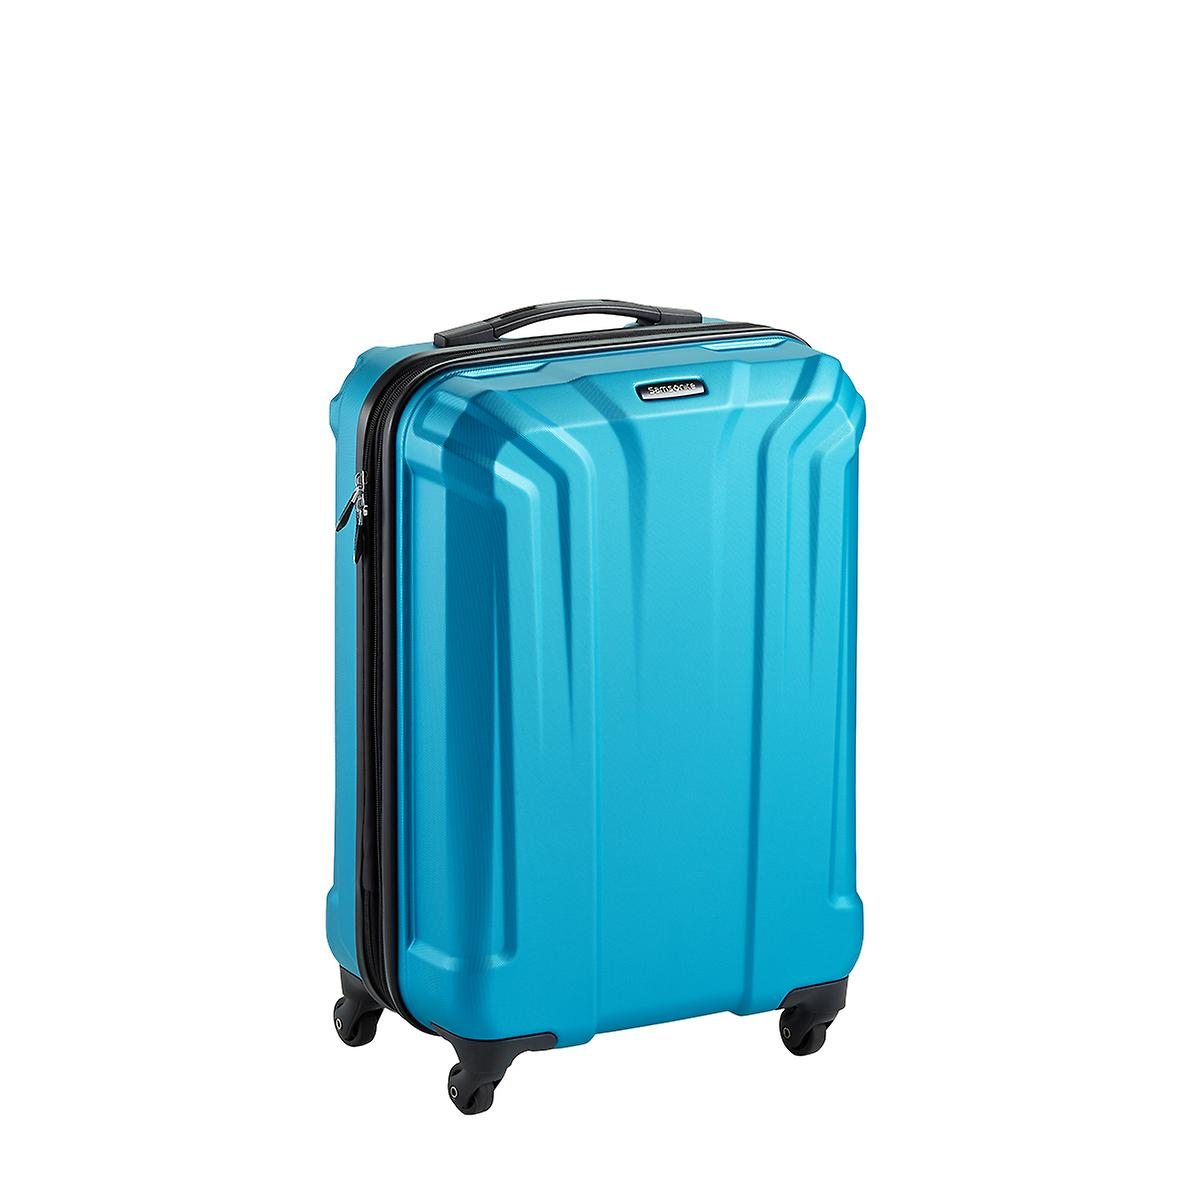 "Samsonite 22"" Electric Blue Opto PC 4-Wheeled Luggage"